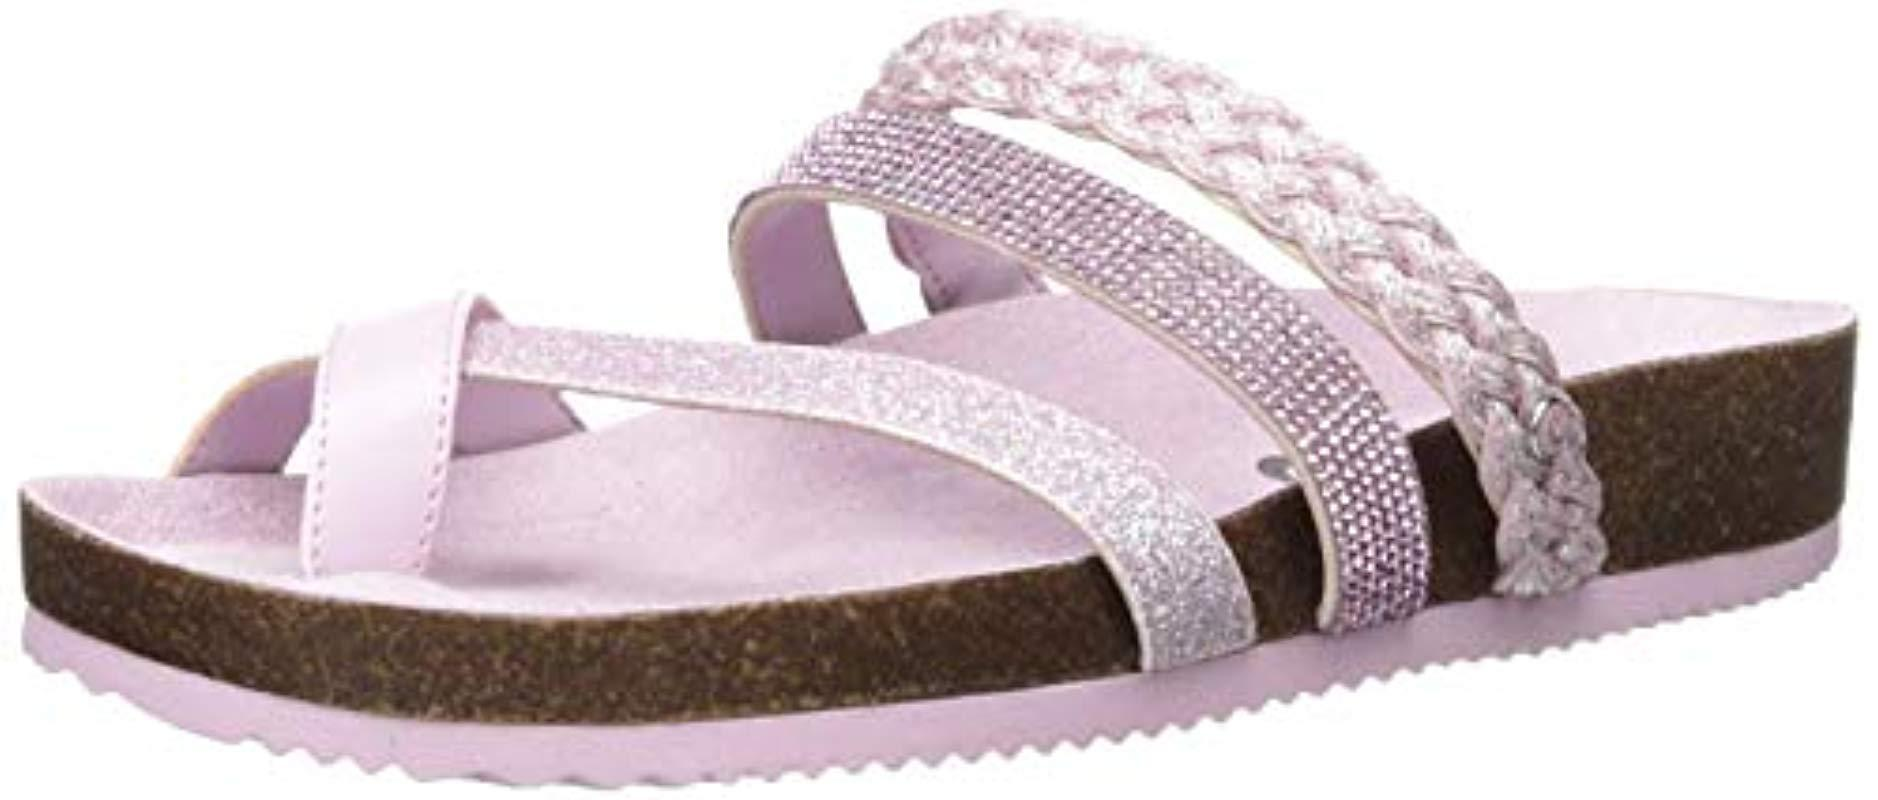 4457e626294d Lyst - Circus by Sam Edelman Oriel Flat Sandal in Purple